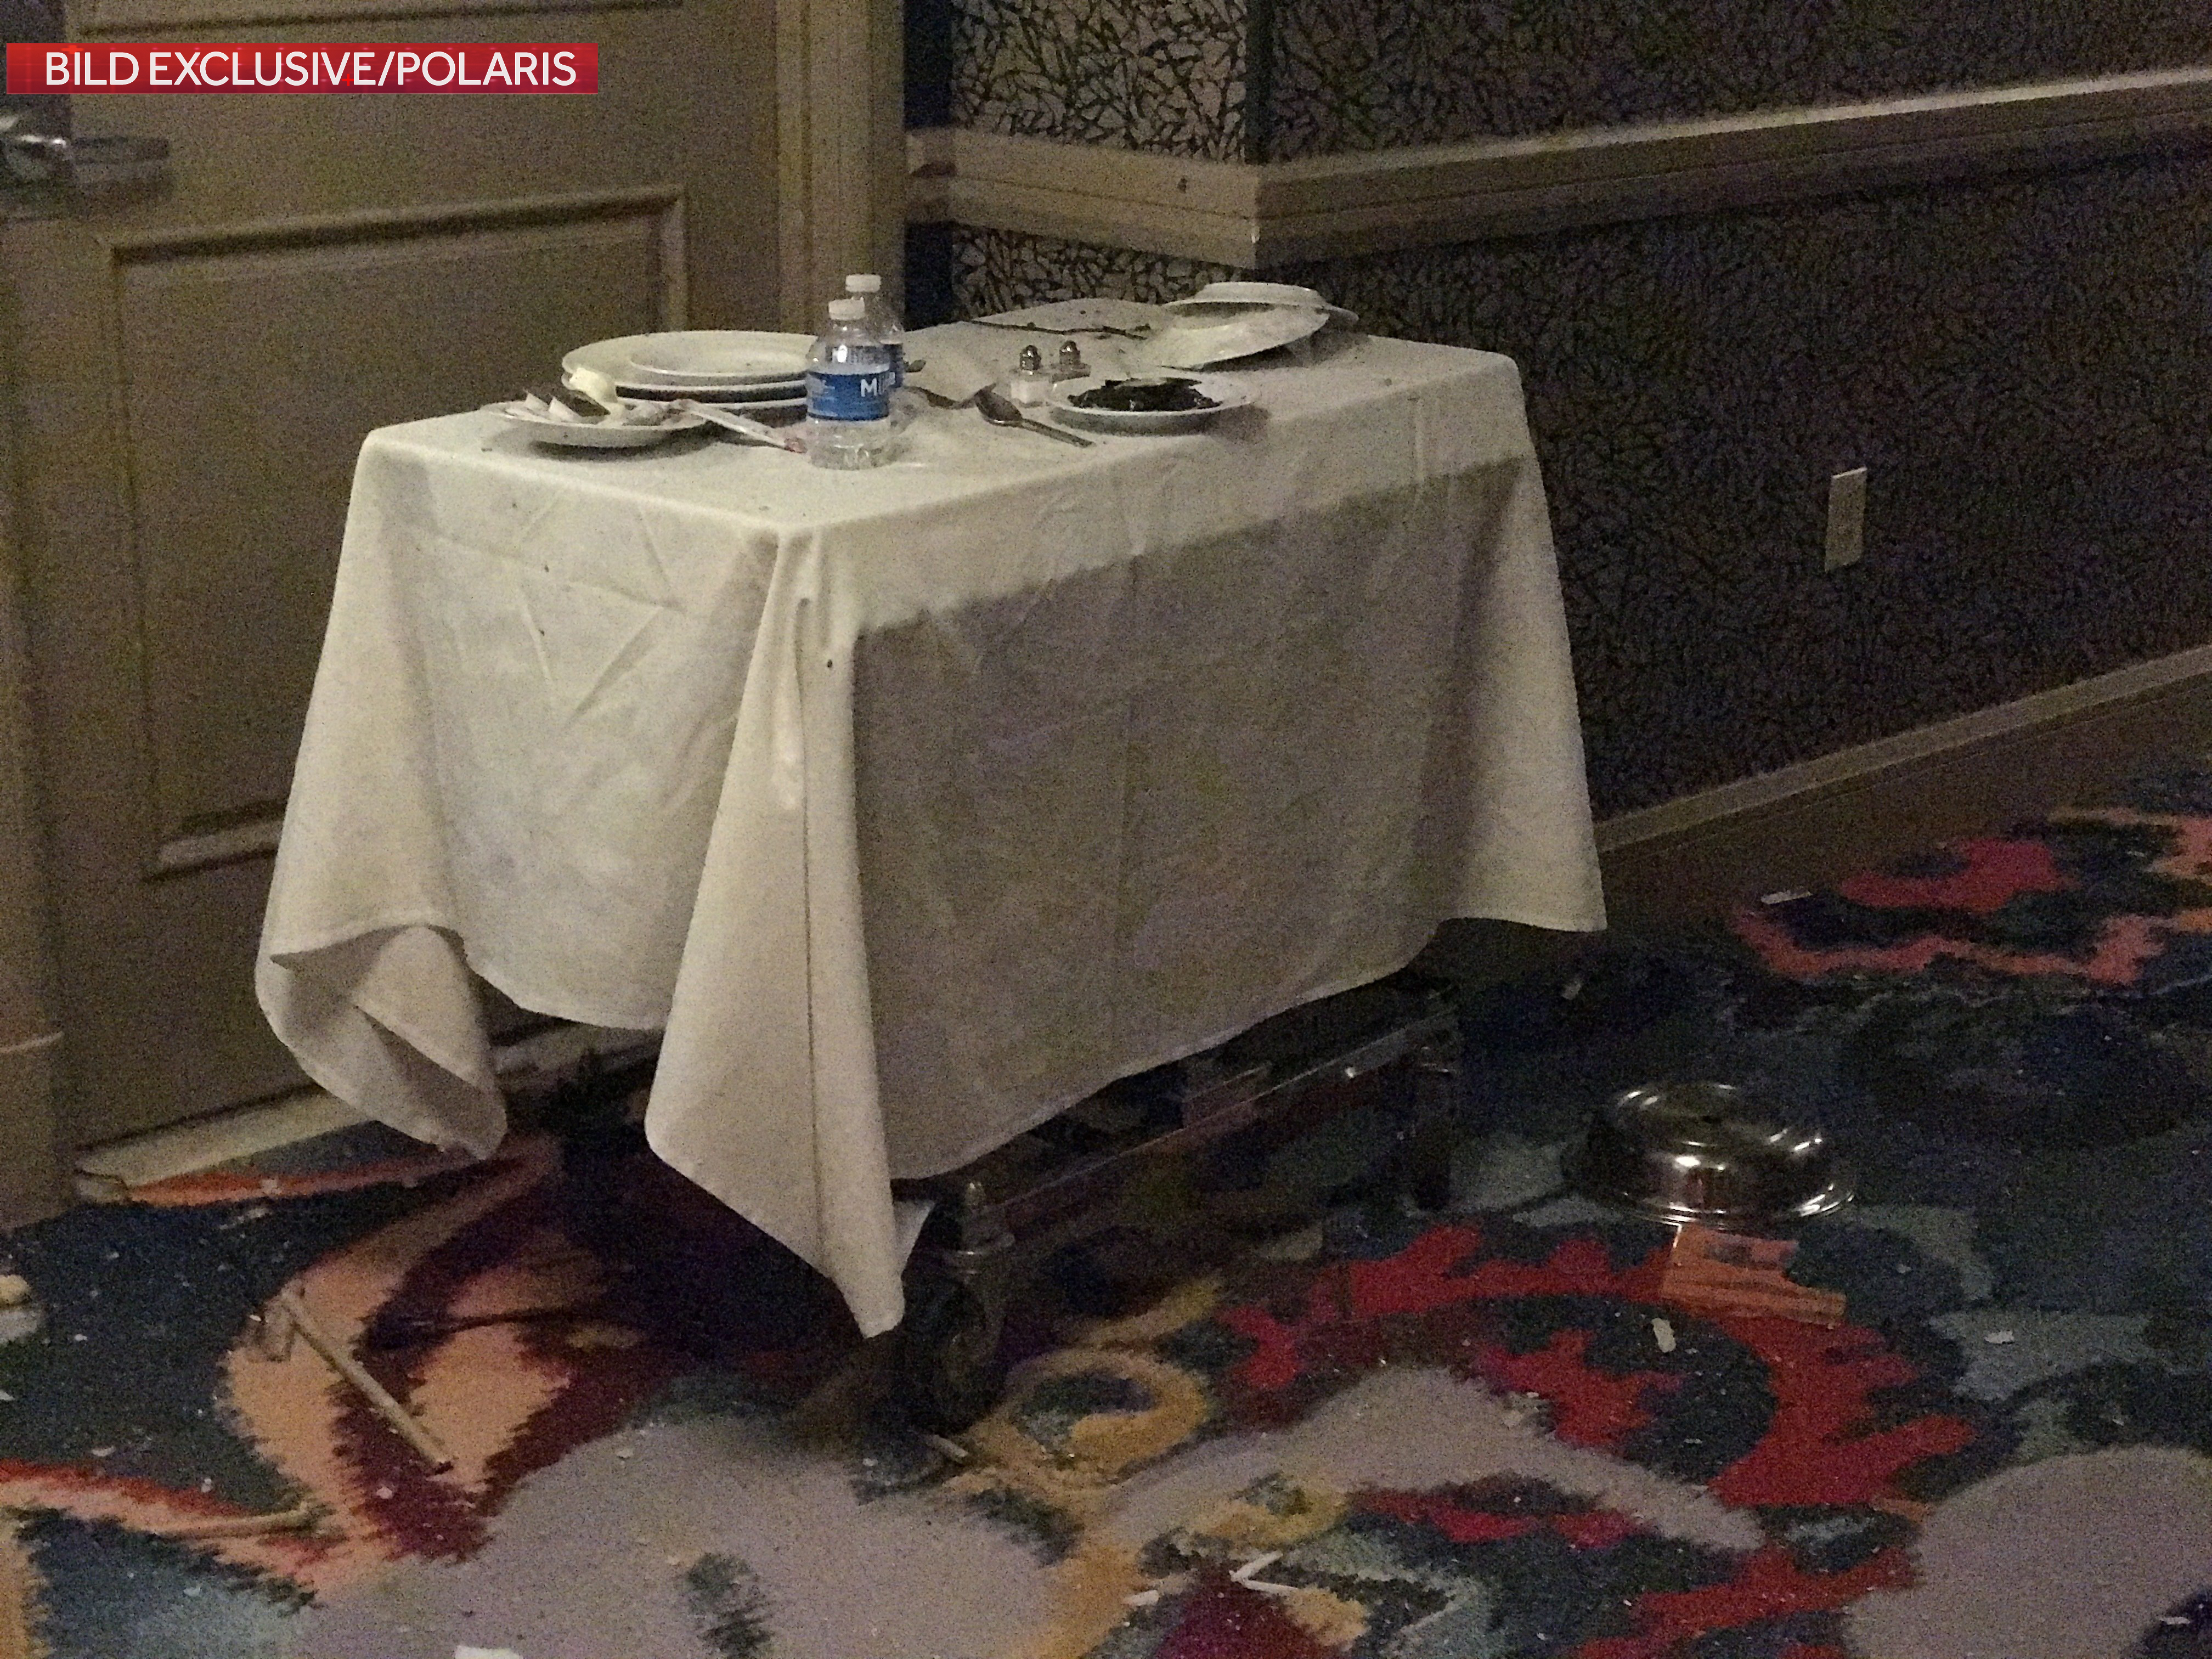 Image: Table outside Mandalay Bay hotel room